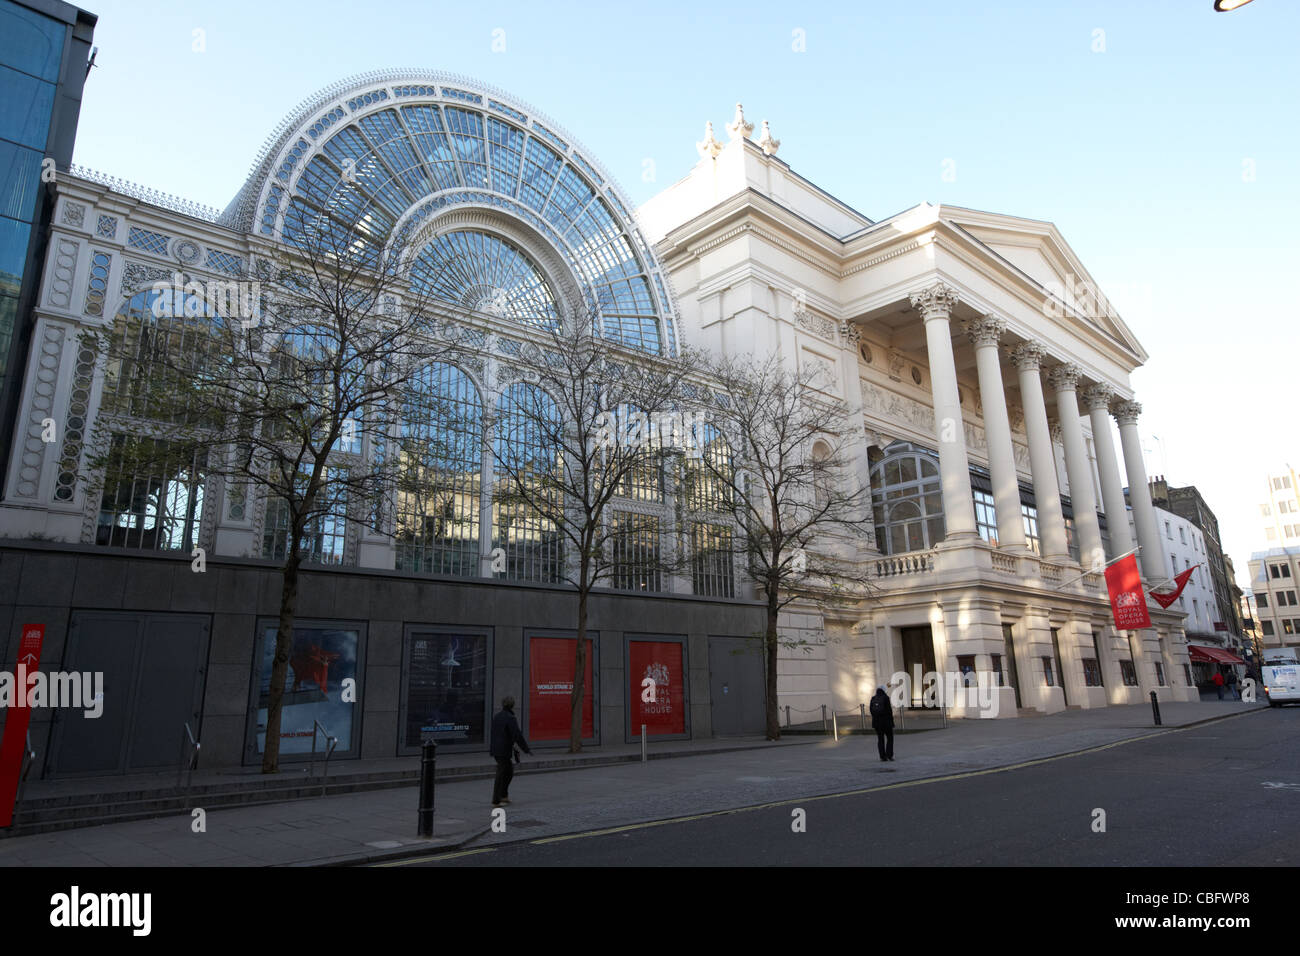 the royal opera house theatreland west end london england uk united kingdom - Stock Image